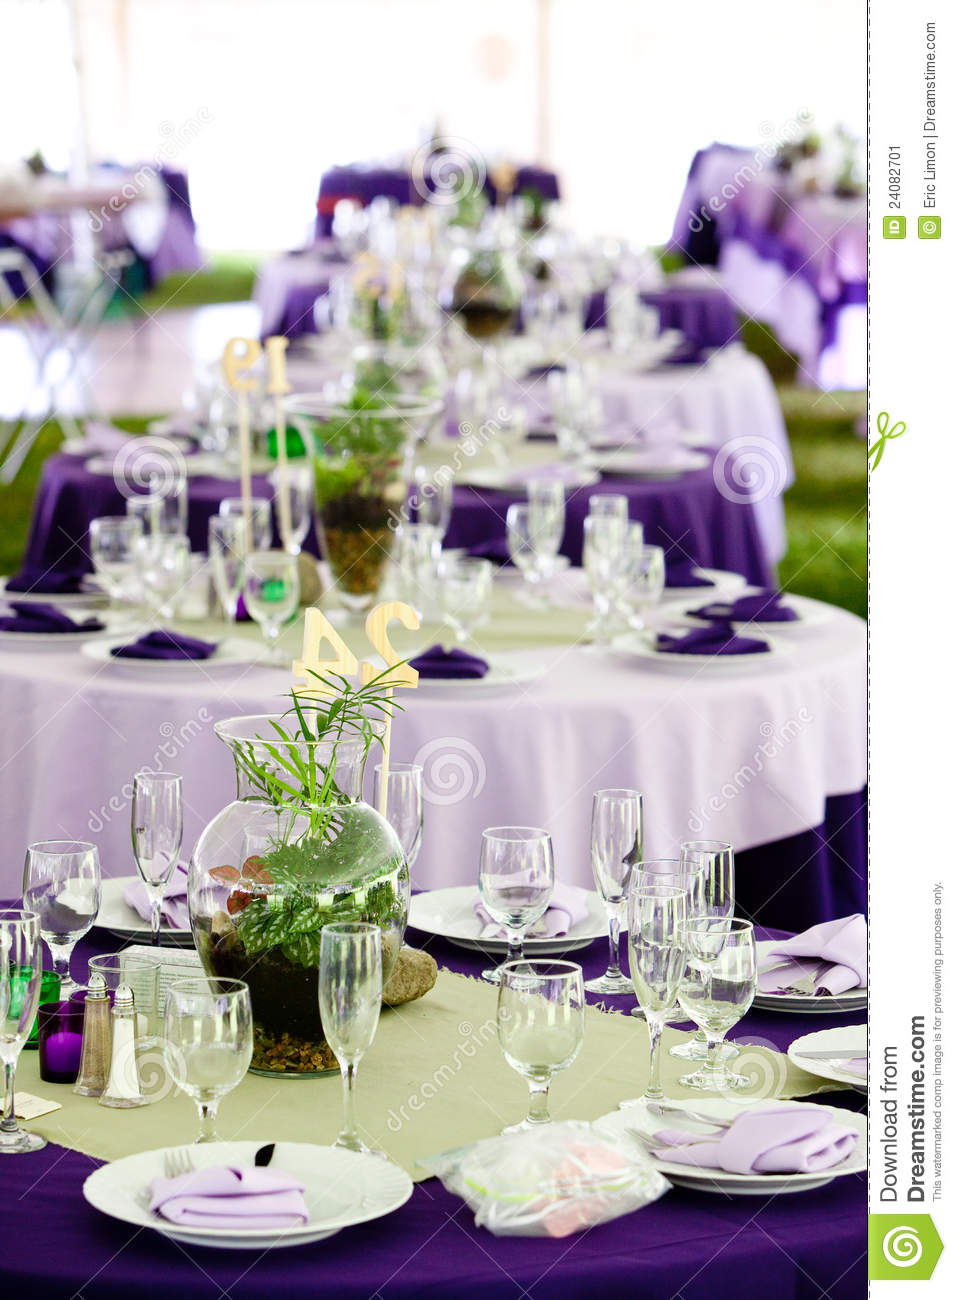 Wedding Tables - Green And Purple Stock Image - Image of table ...